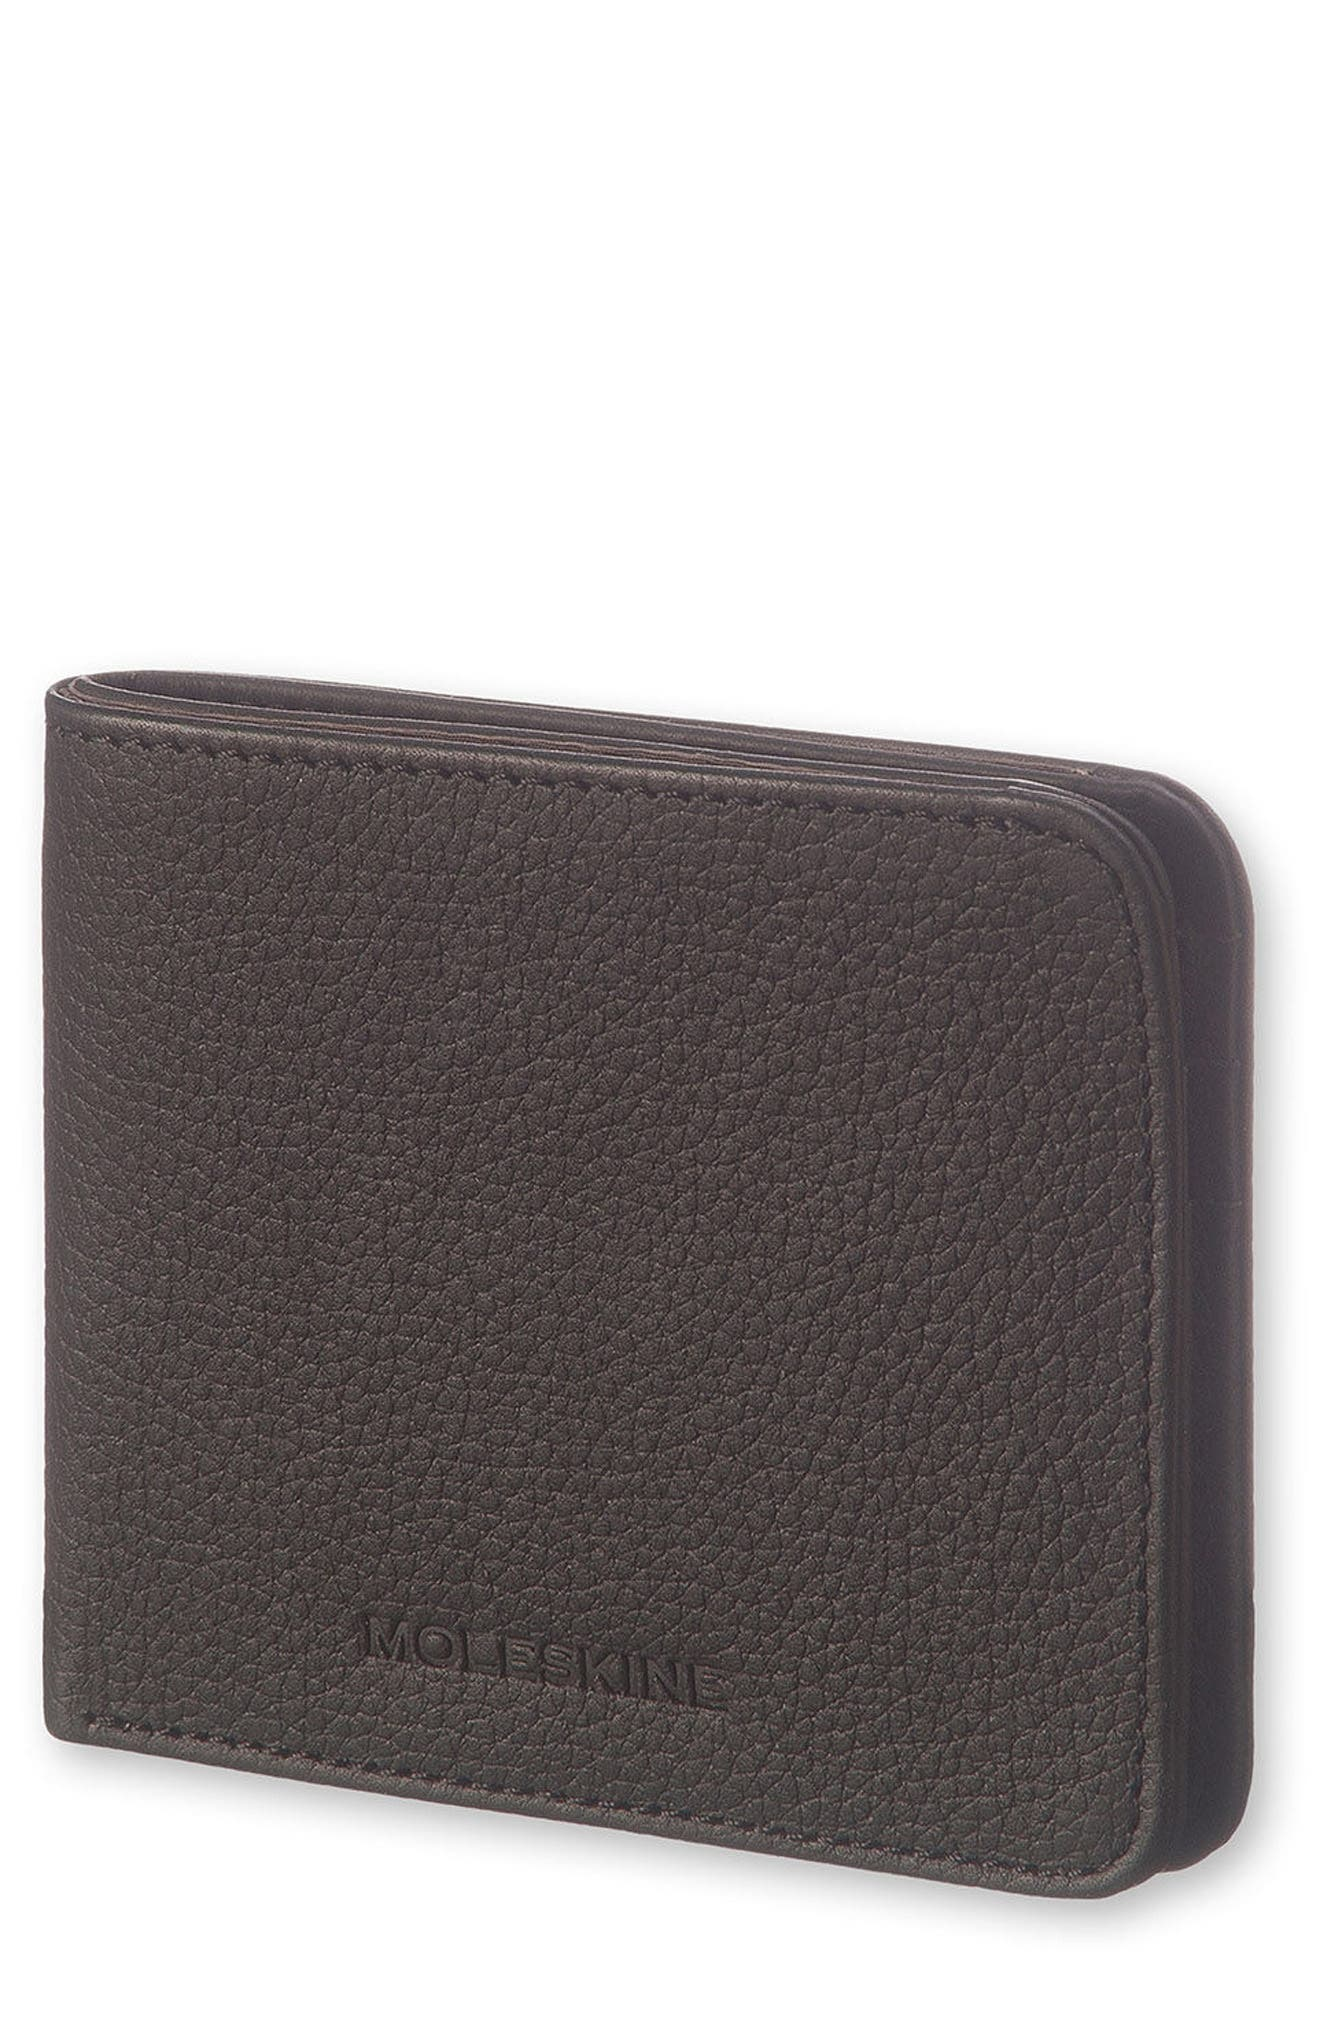 Lineage Leather Wallet,                         Main,                         color, BLACK